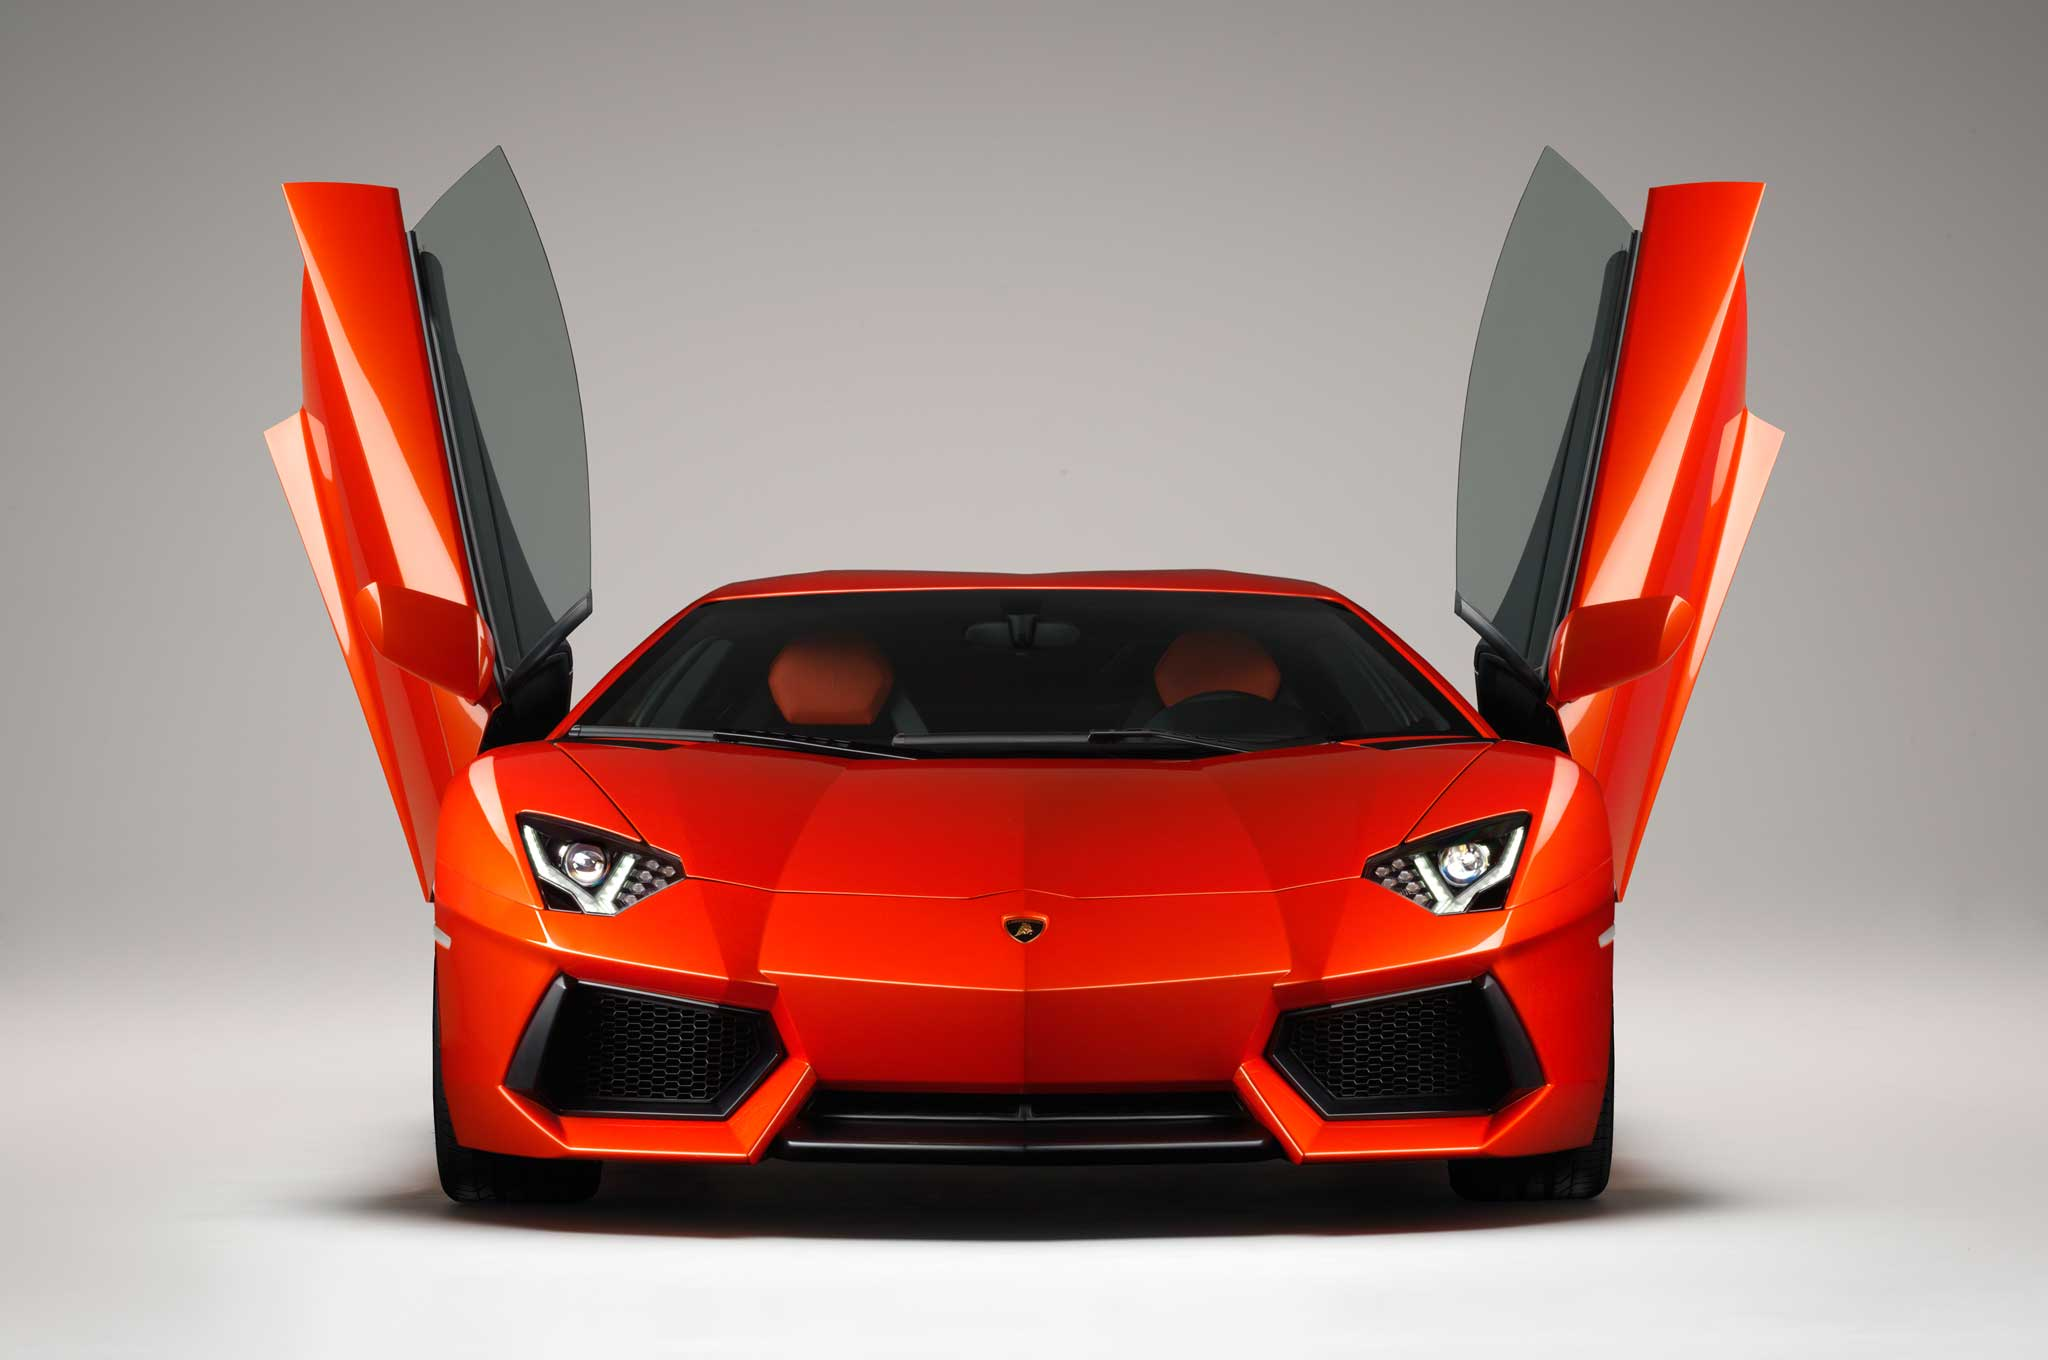 How much does it cost for a lamborghini